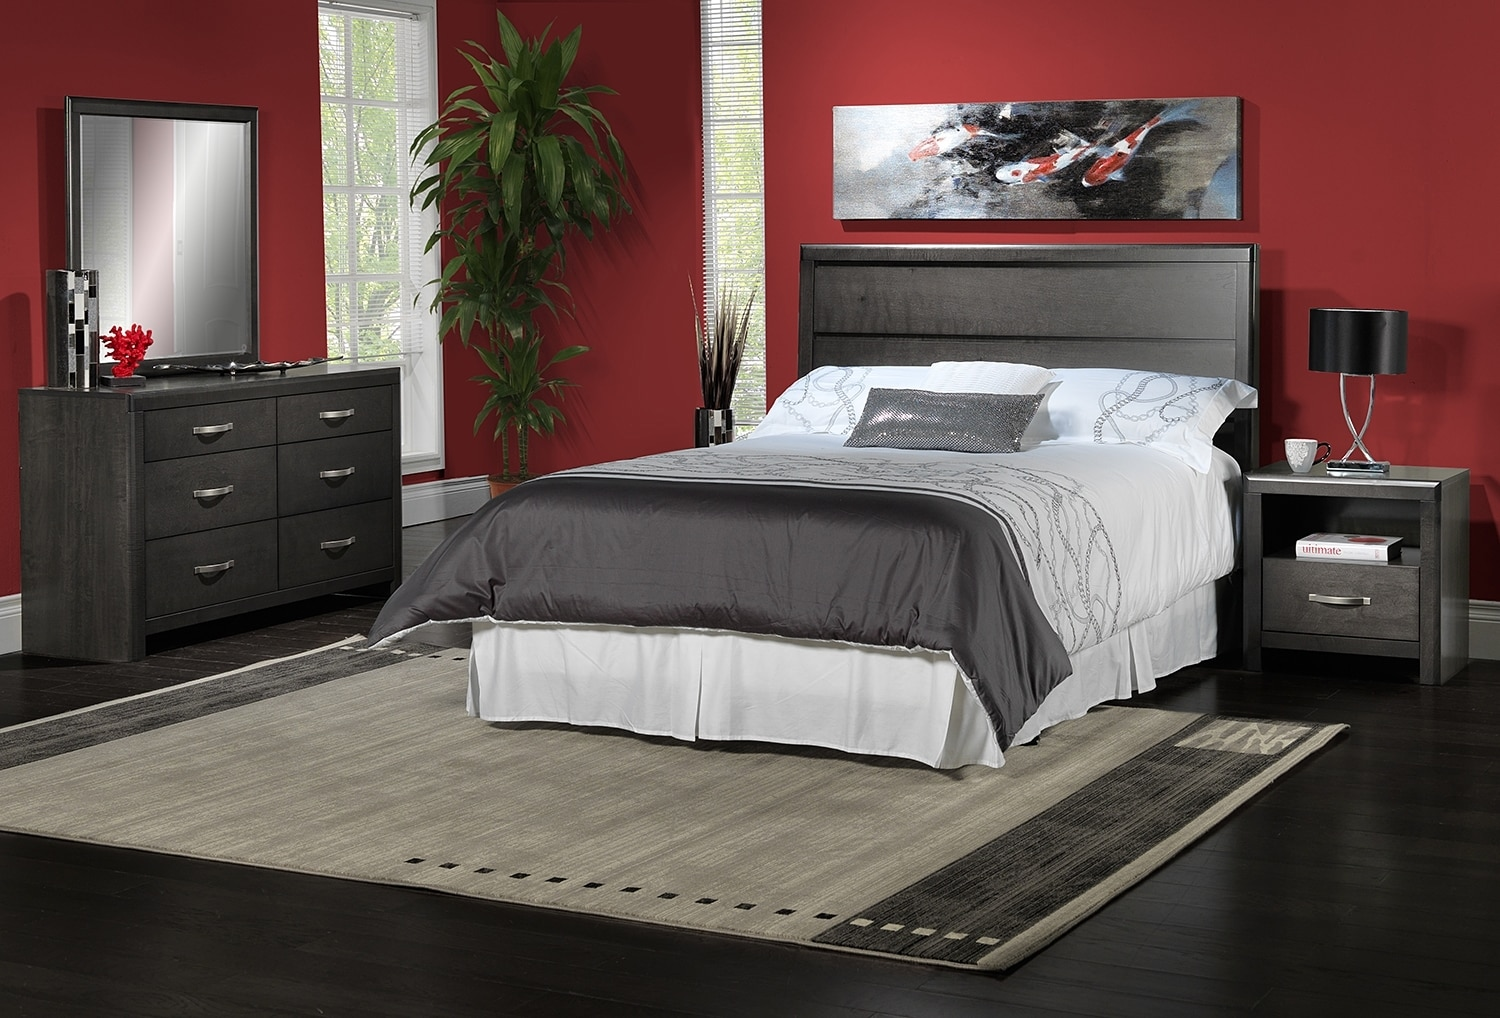 Bedroom Furniture - Dessy 4-Piece Queen Bedroom Set - Charcoal